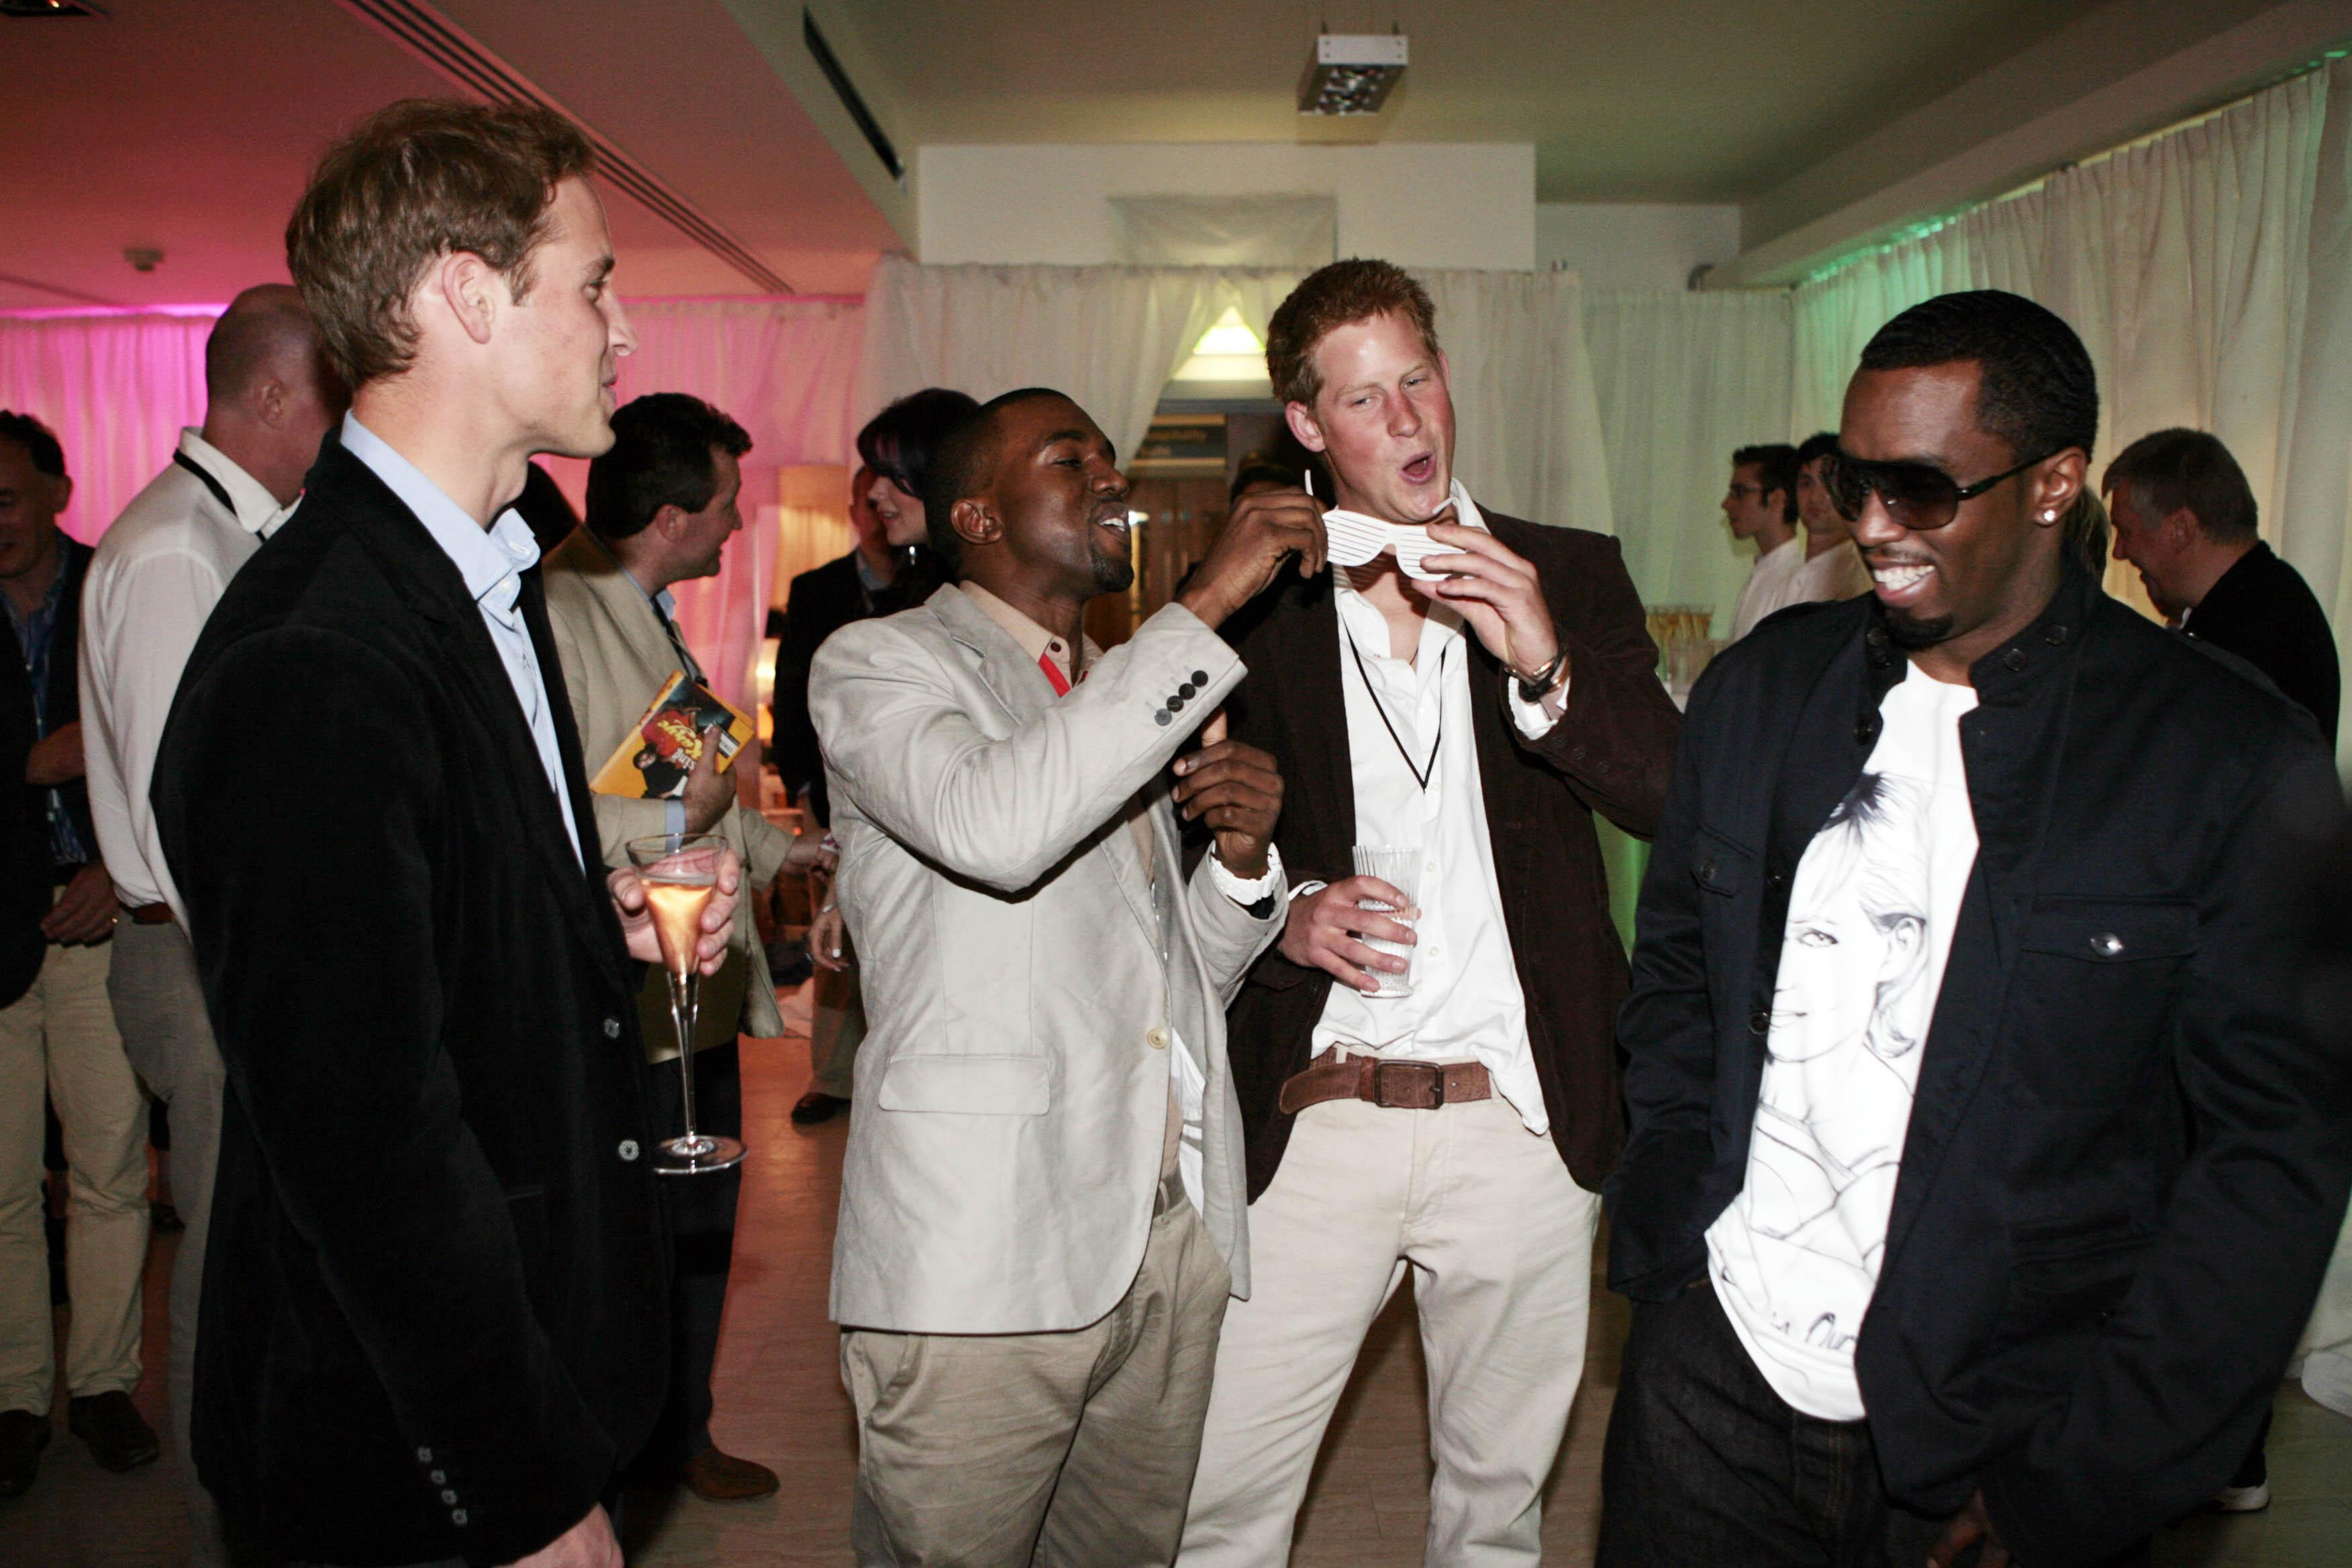 Britain's Prince William, singer Kanye West, Prince Harry and singer P. Diddy attend a reception after the concert in memory of Diana, Princess of Wales, at Wembley Stadium in London on July 1, 2007.